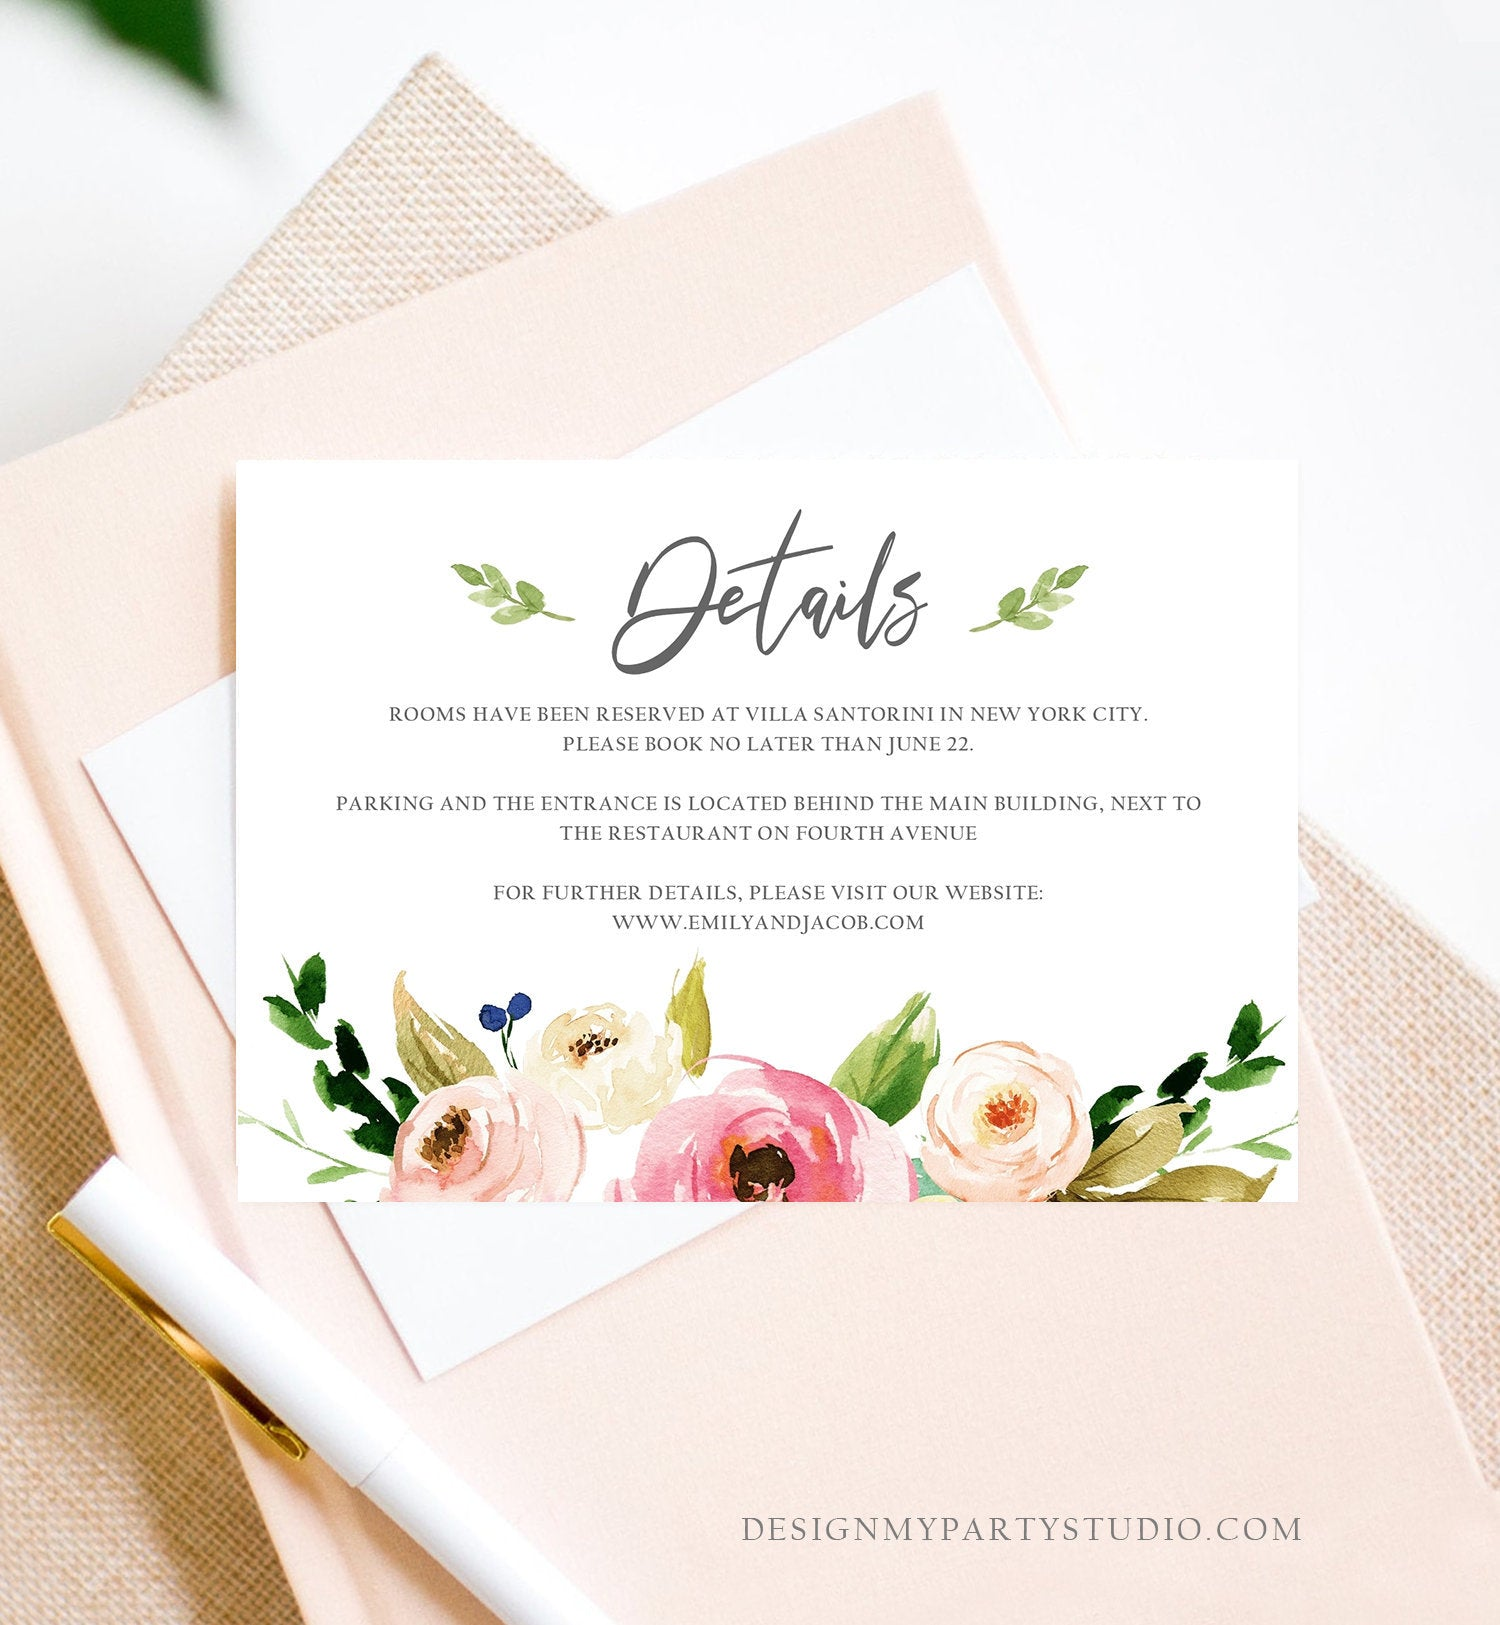 Editable Floral Details Card Wedding Bridal Shower Greenery Boho Information Card Enclosure Card Insert Card Corjl Template Printable 0166